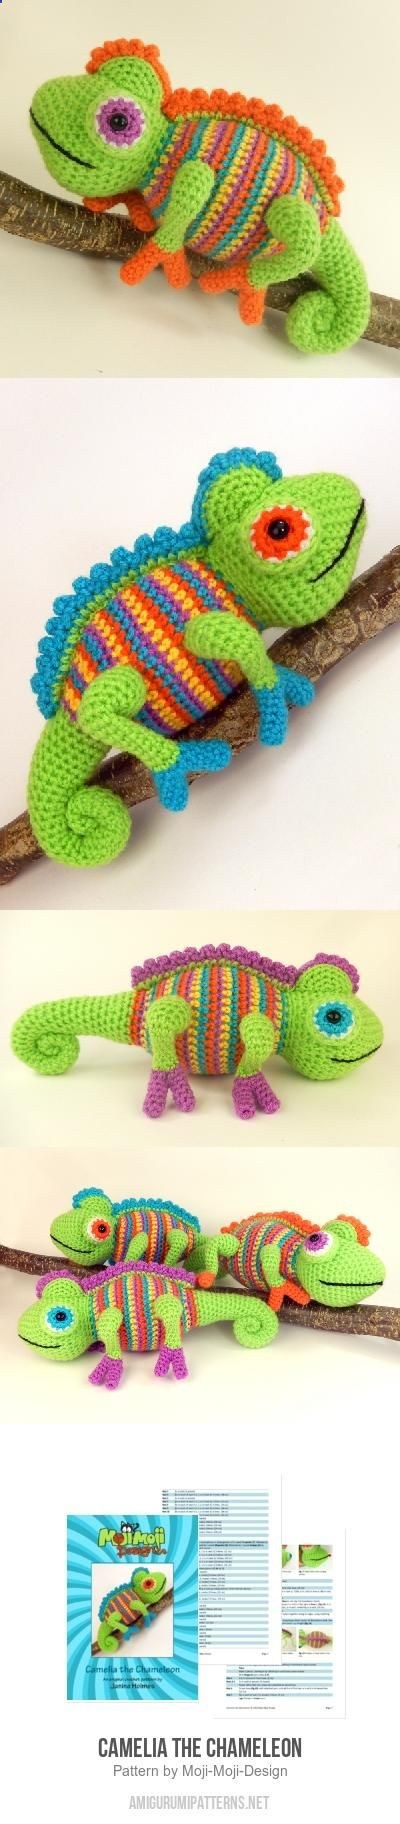 Camelia The Chameleon Amigurumi Pattern By Janine Holmes At Moji